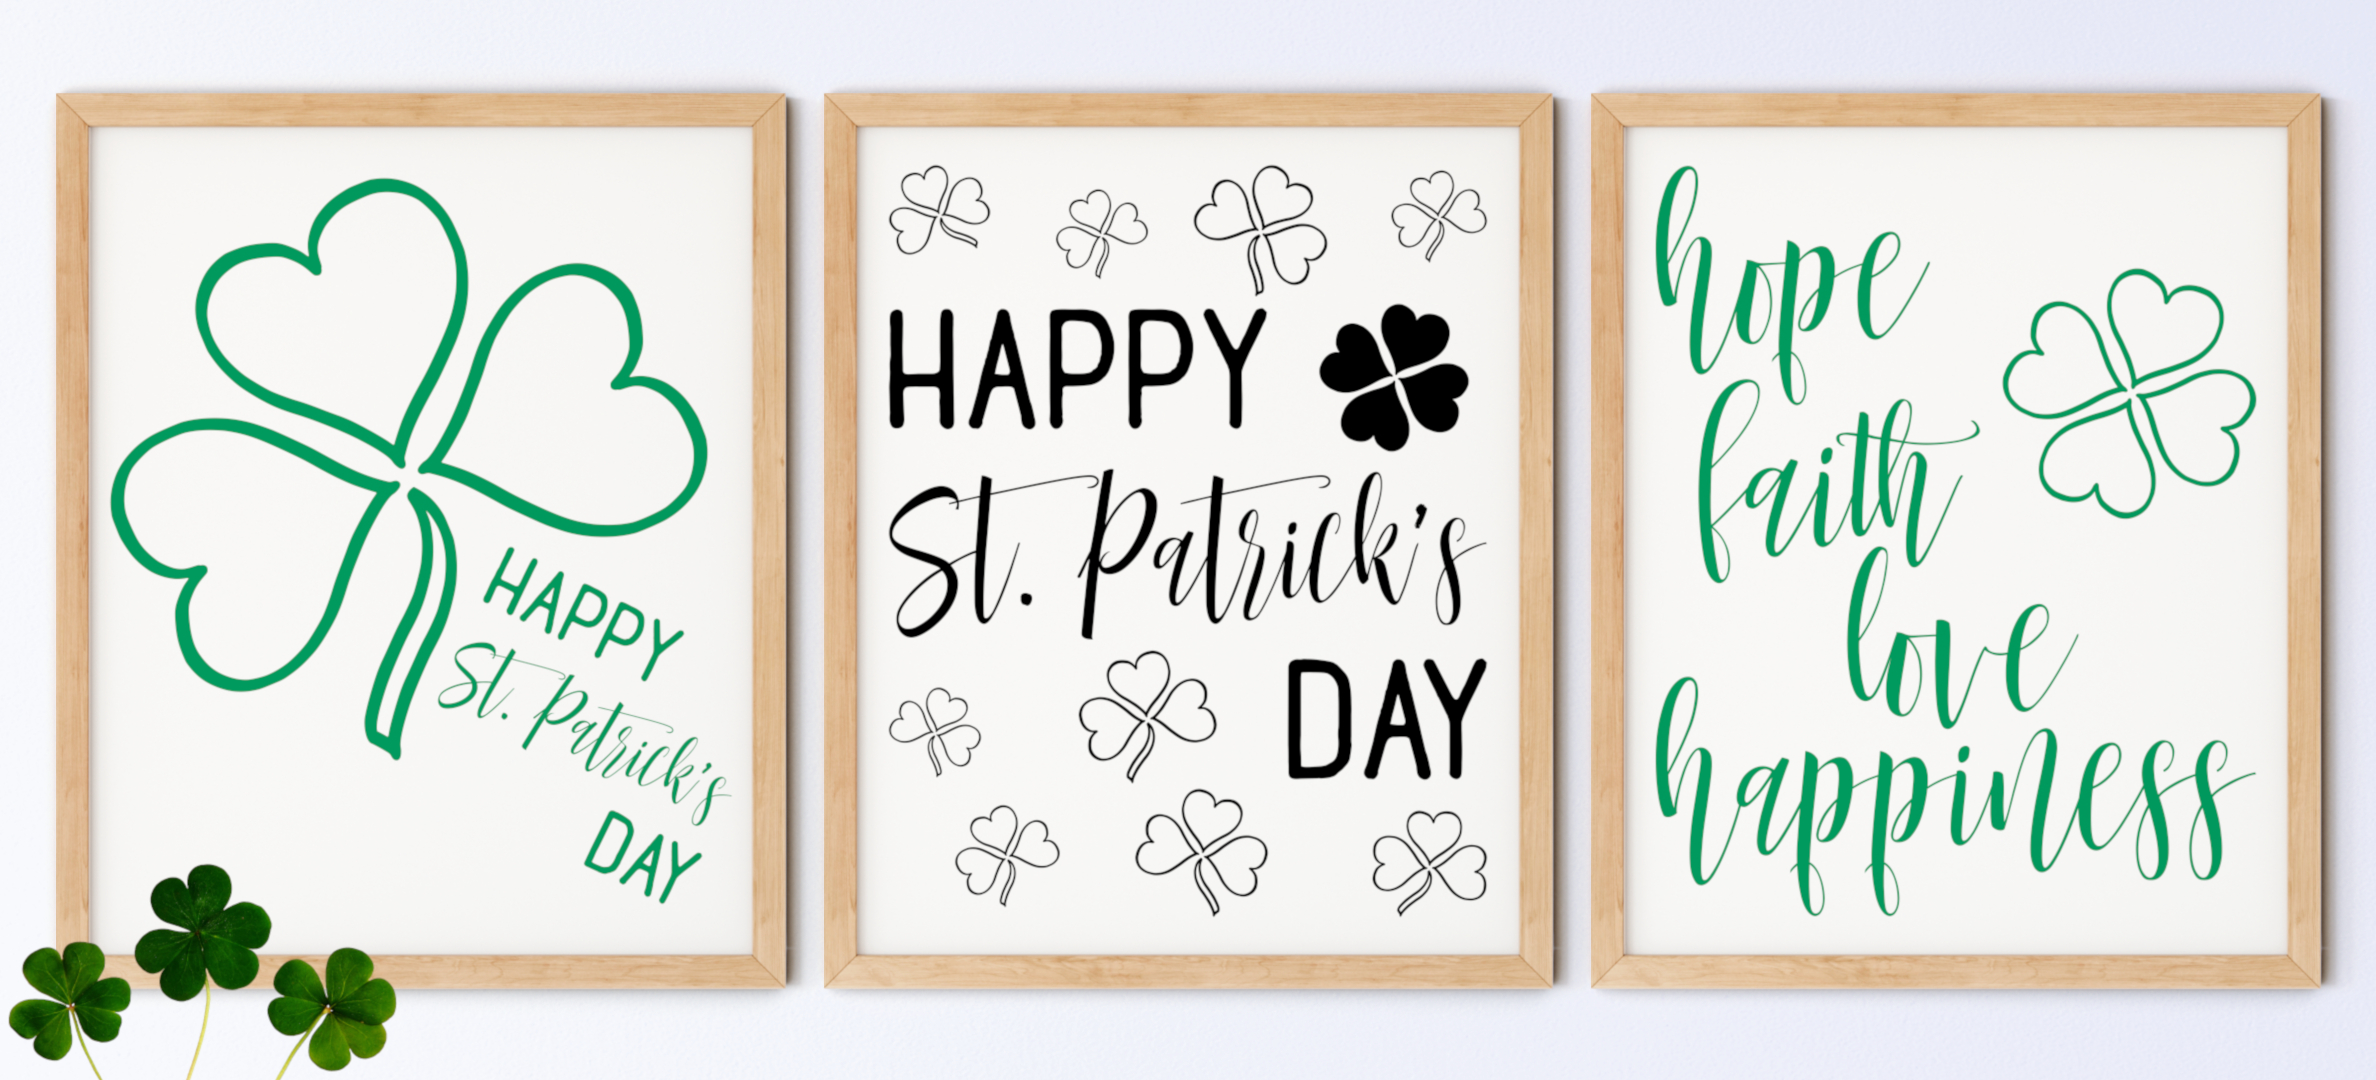 Printable St. Patrick's Day Wall Art